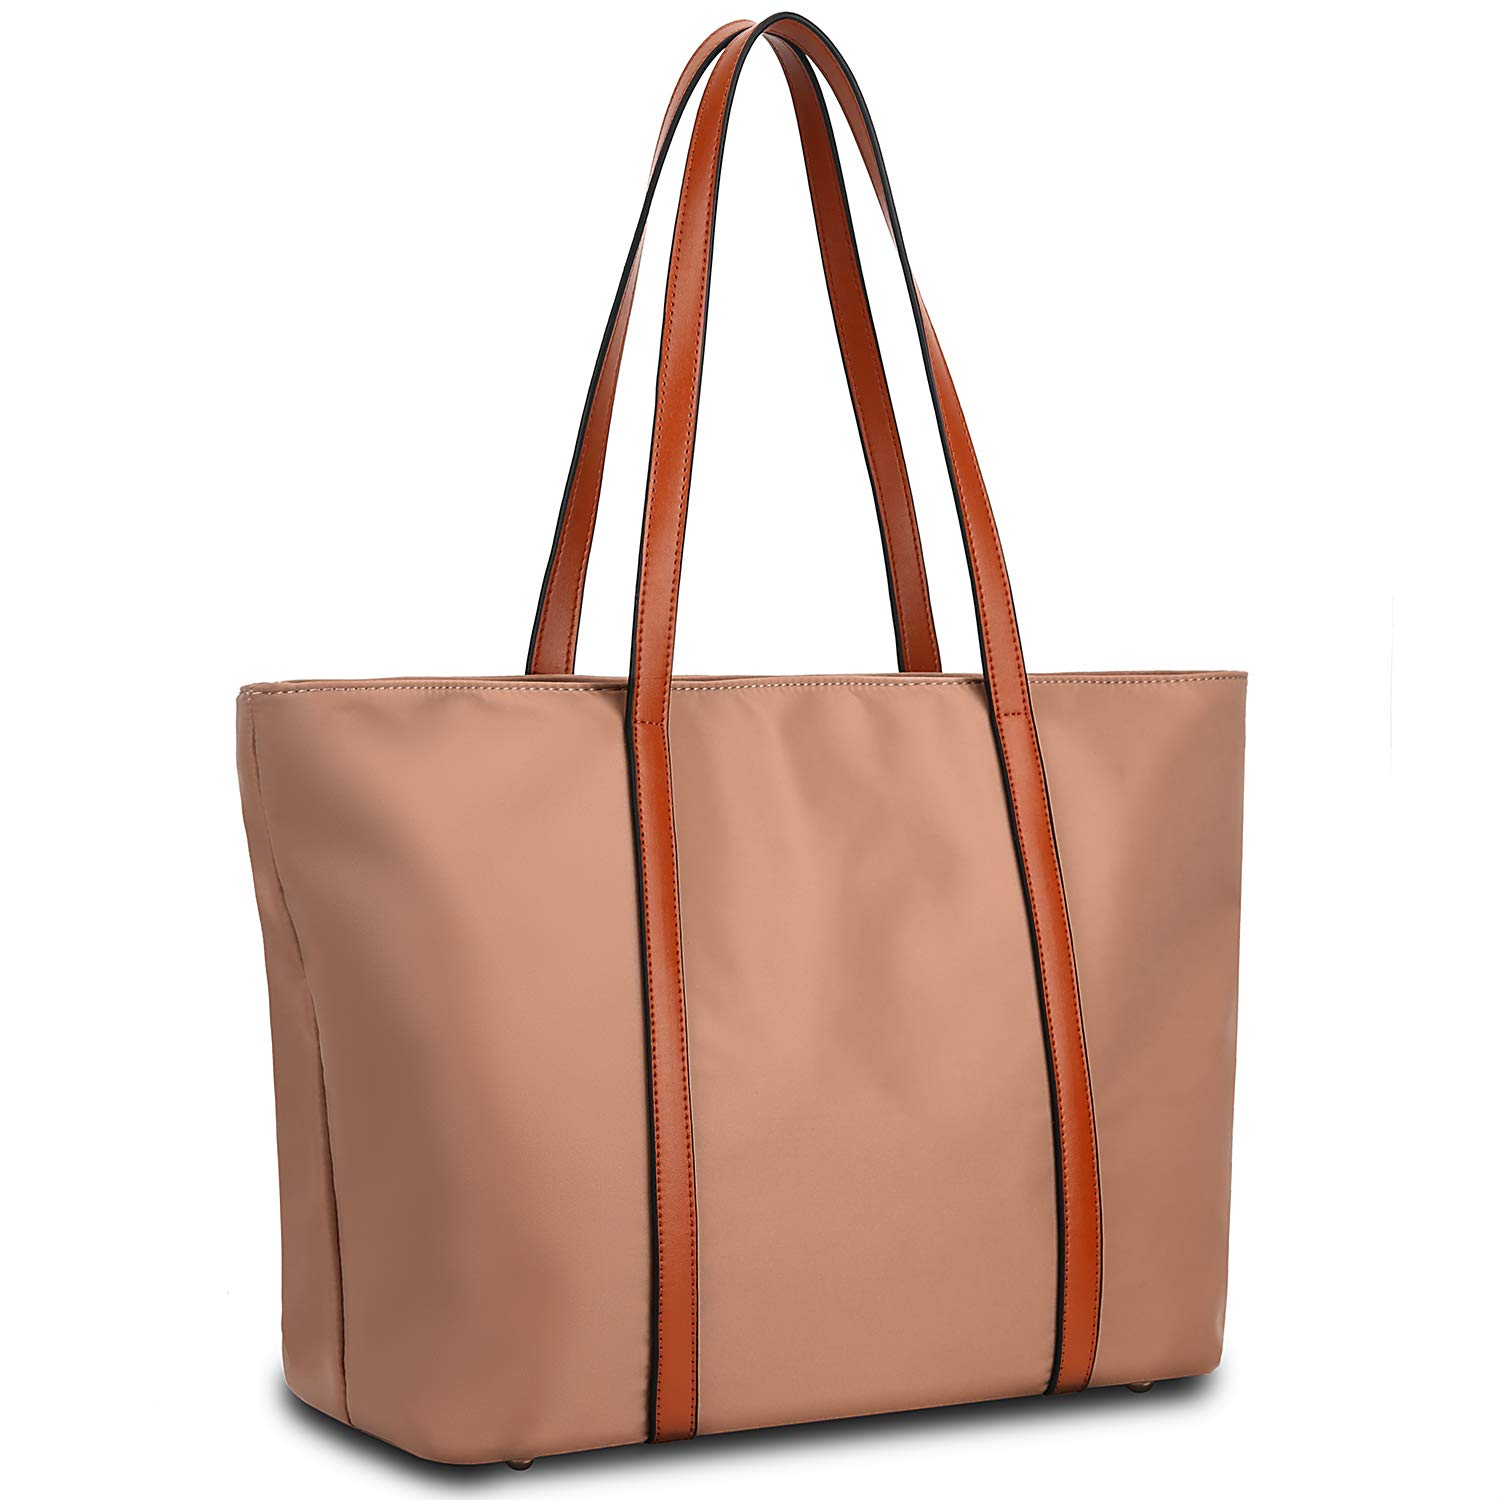 YALUXE Tote for Women Leather Nylon Shoulder Bag Women's Oxford Nylon Large Capacity Work fit 15.6 inch brown&rosybrown